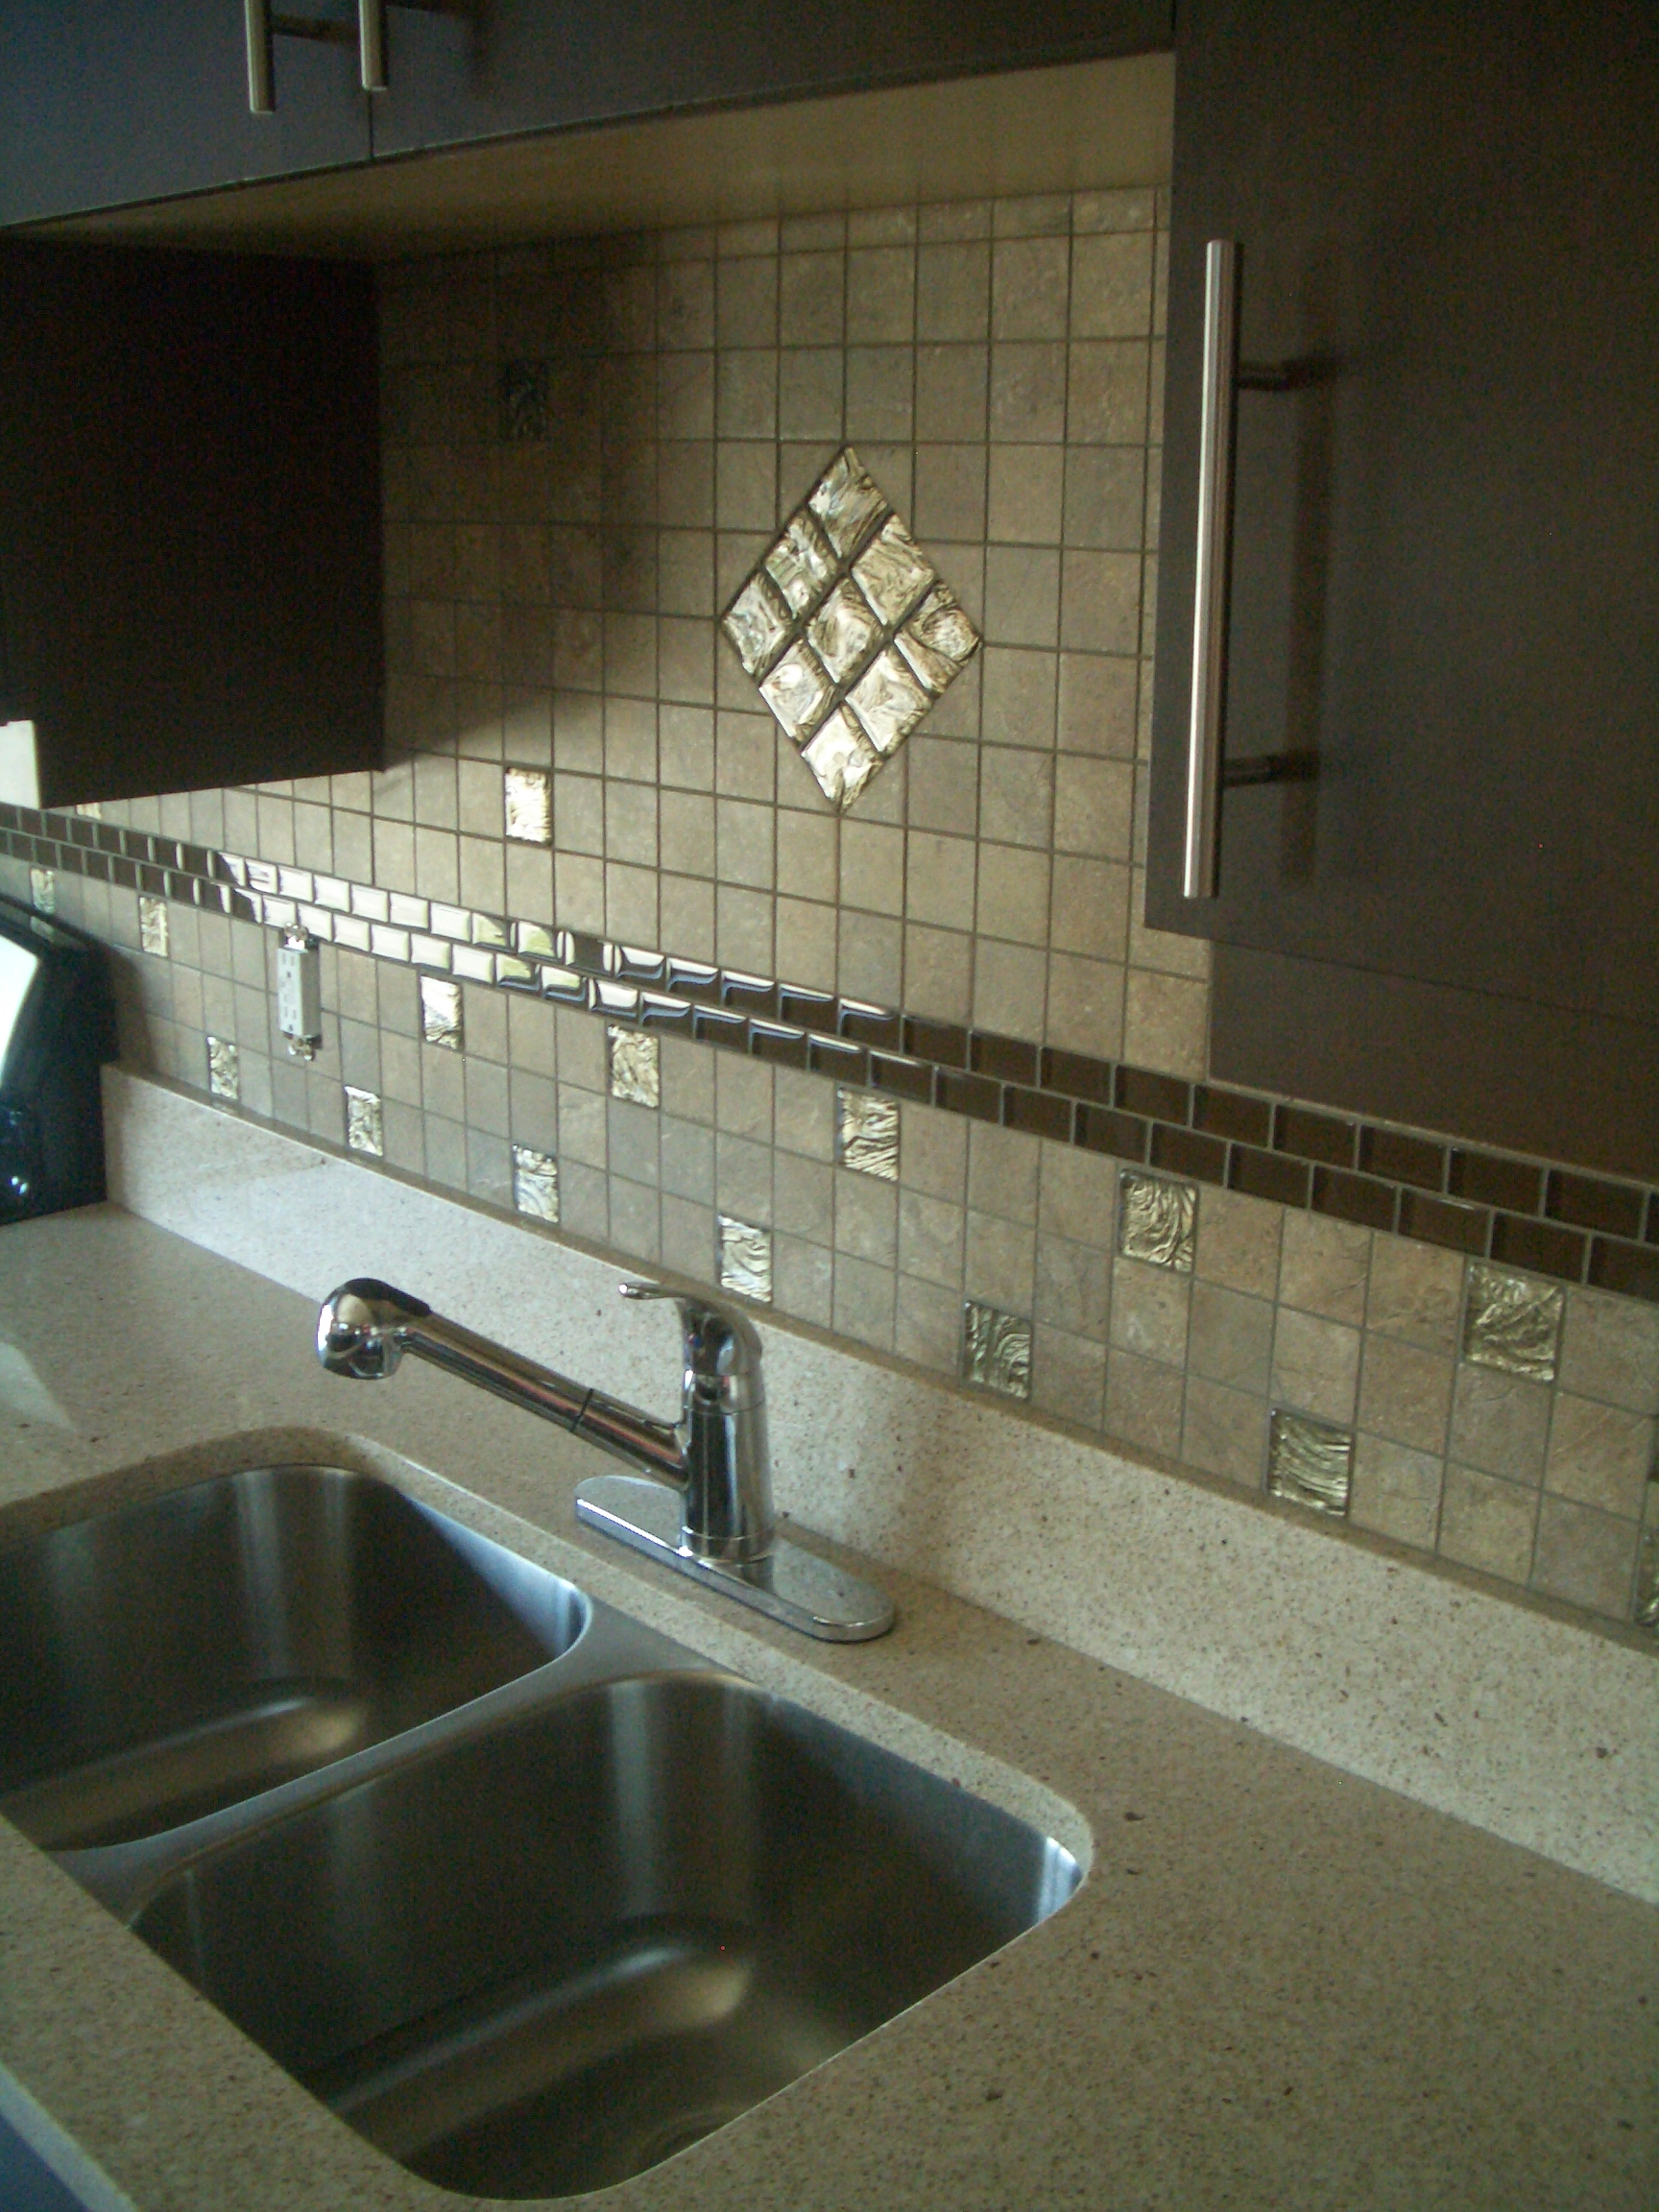 Backsplash Installation Travertine Tile Backsplash Photos Ideas Kitchen Backsplash In Fort